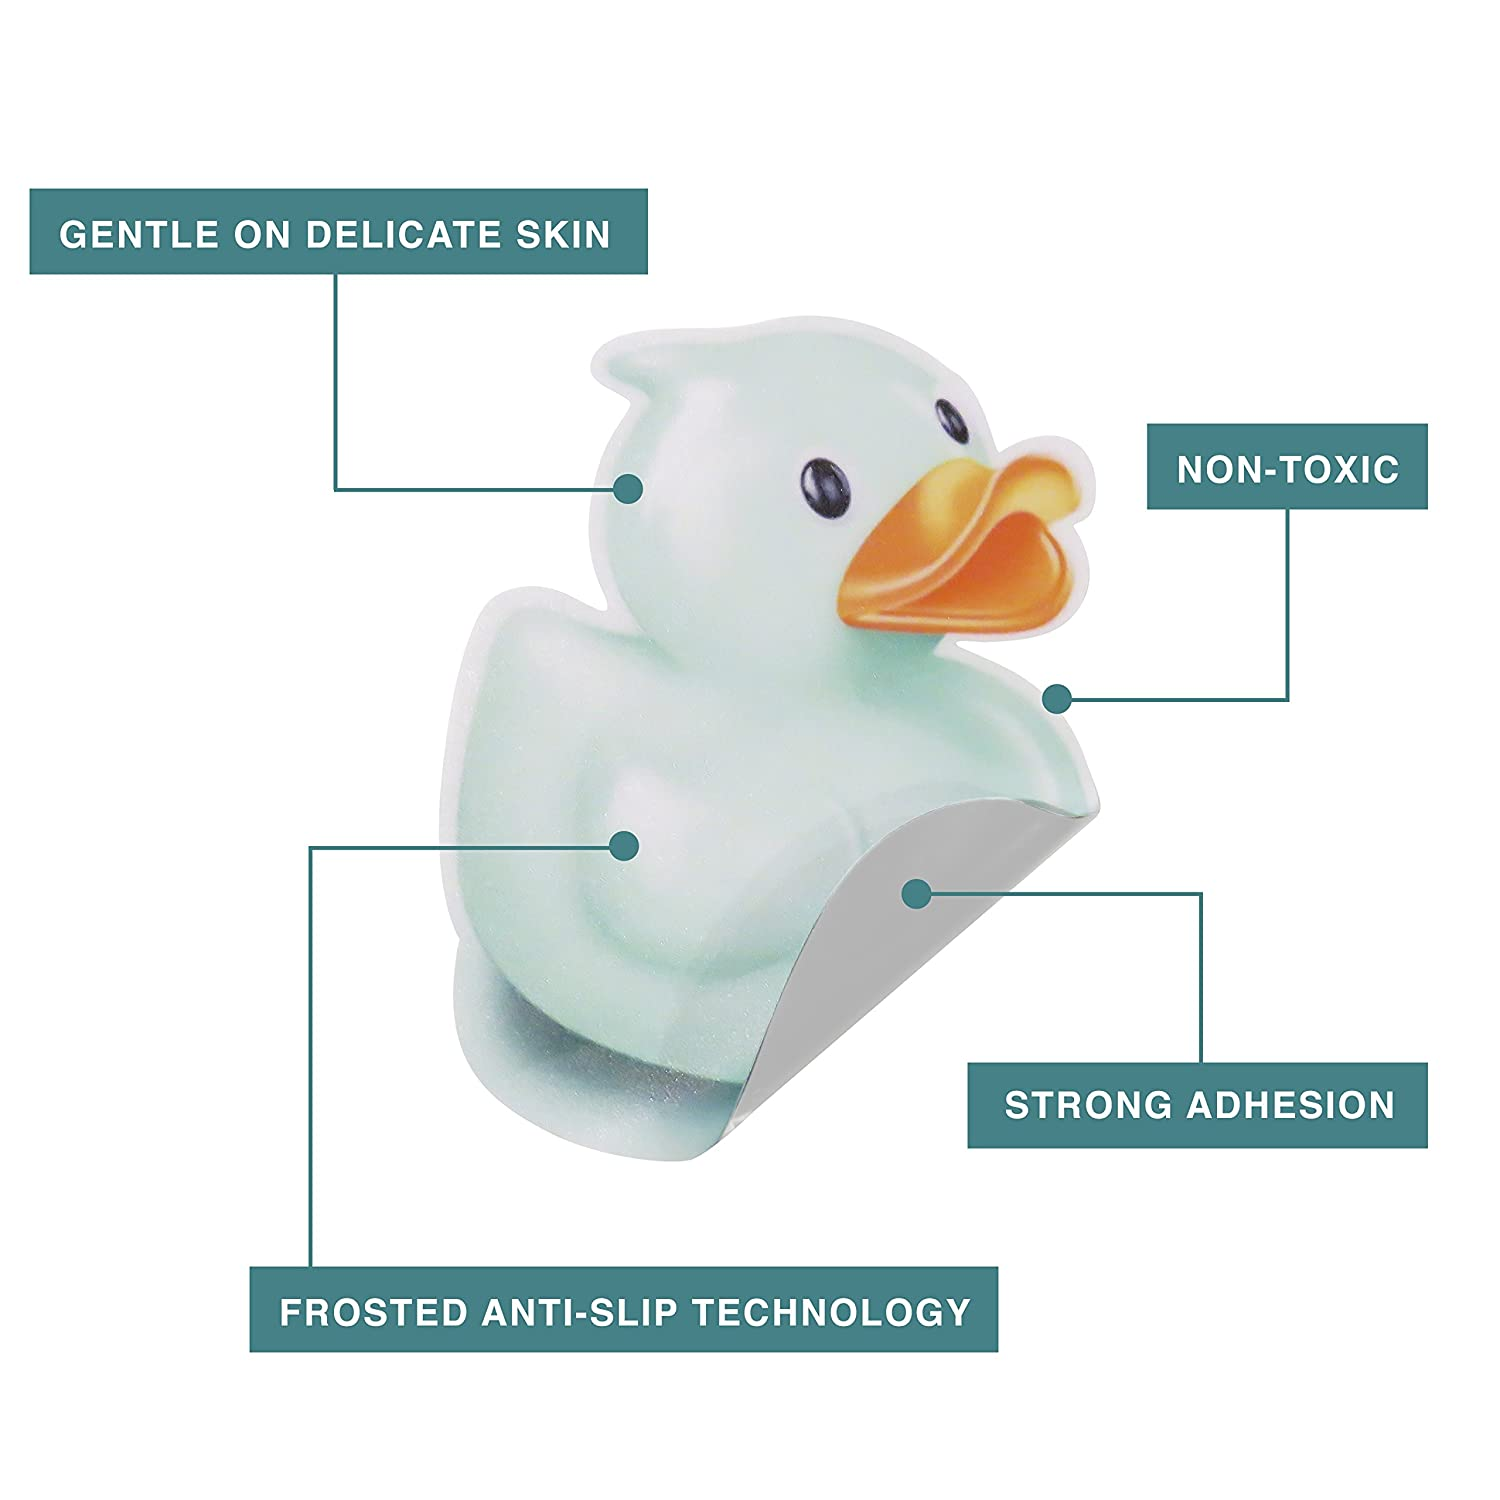 amazon com non slip safety adhesive duck bathtub or shower amazon com non slip safety adhesive duck bathtub or shower stickers non toxic anti bacterial mold mildew resistant pack of 8 treads large surface